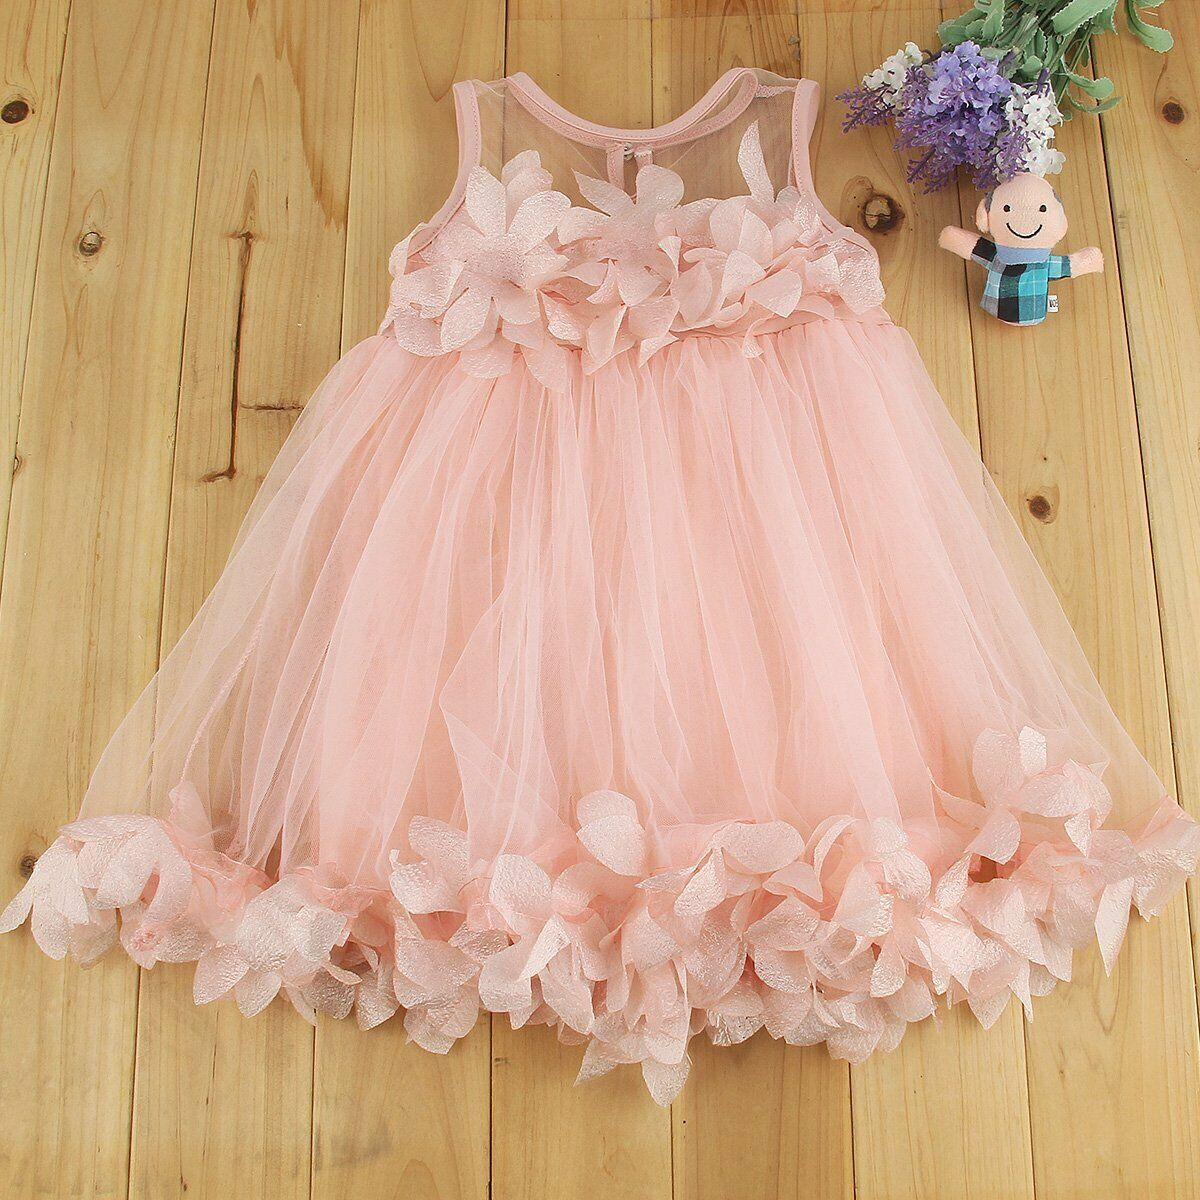 Toddler Kids Baby Girls Lace Dress Princess Party Pageant Holiday Tutu Dresses